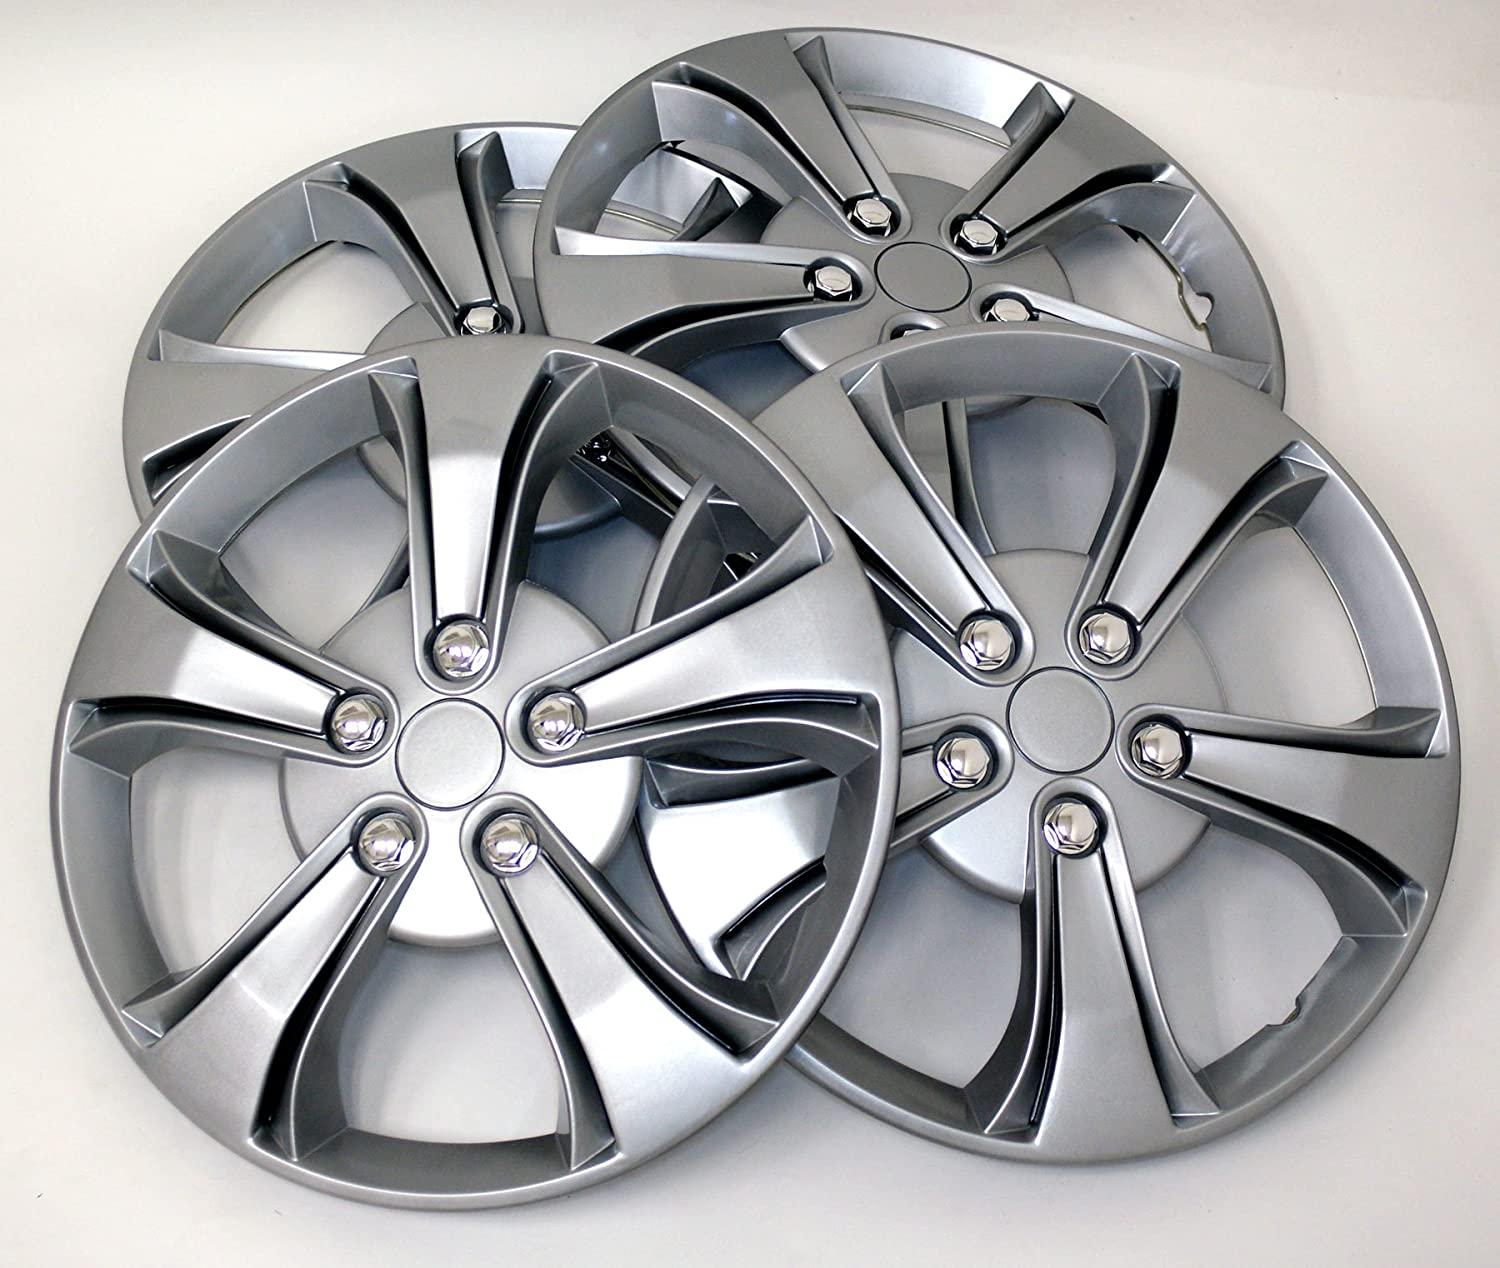 TuningPros WSC-616S17 Hubcaps Wheel Skin Cover 17-Inches Silver Set of 4